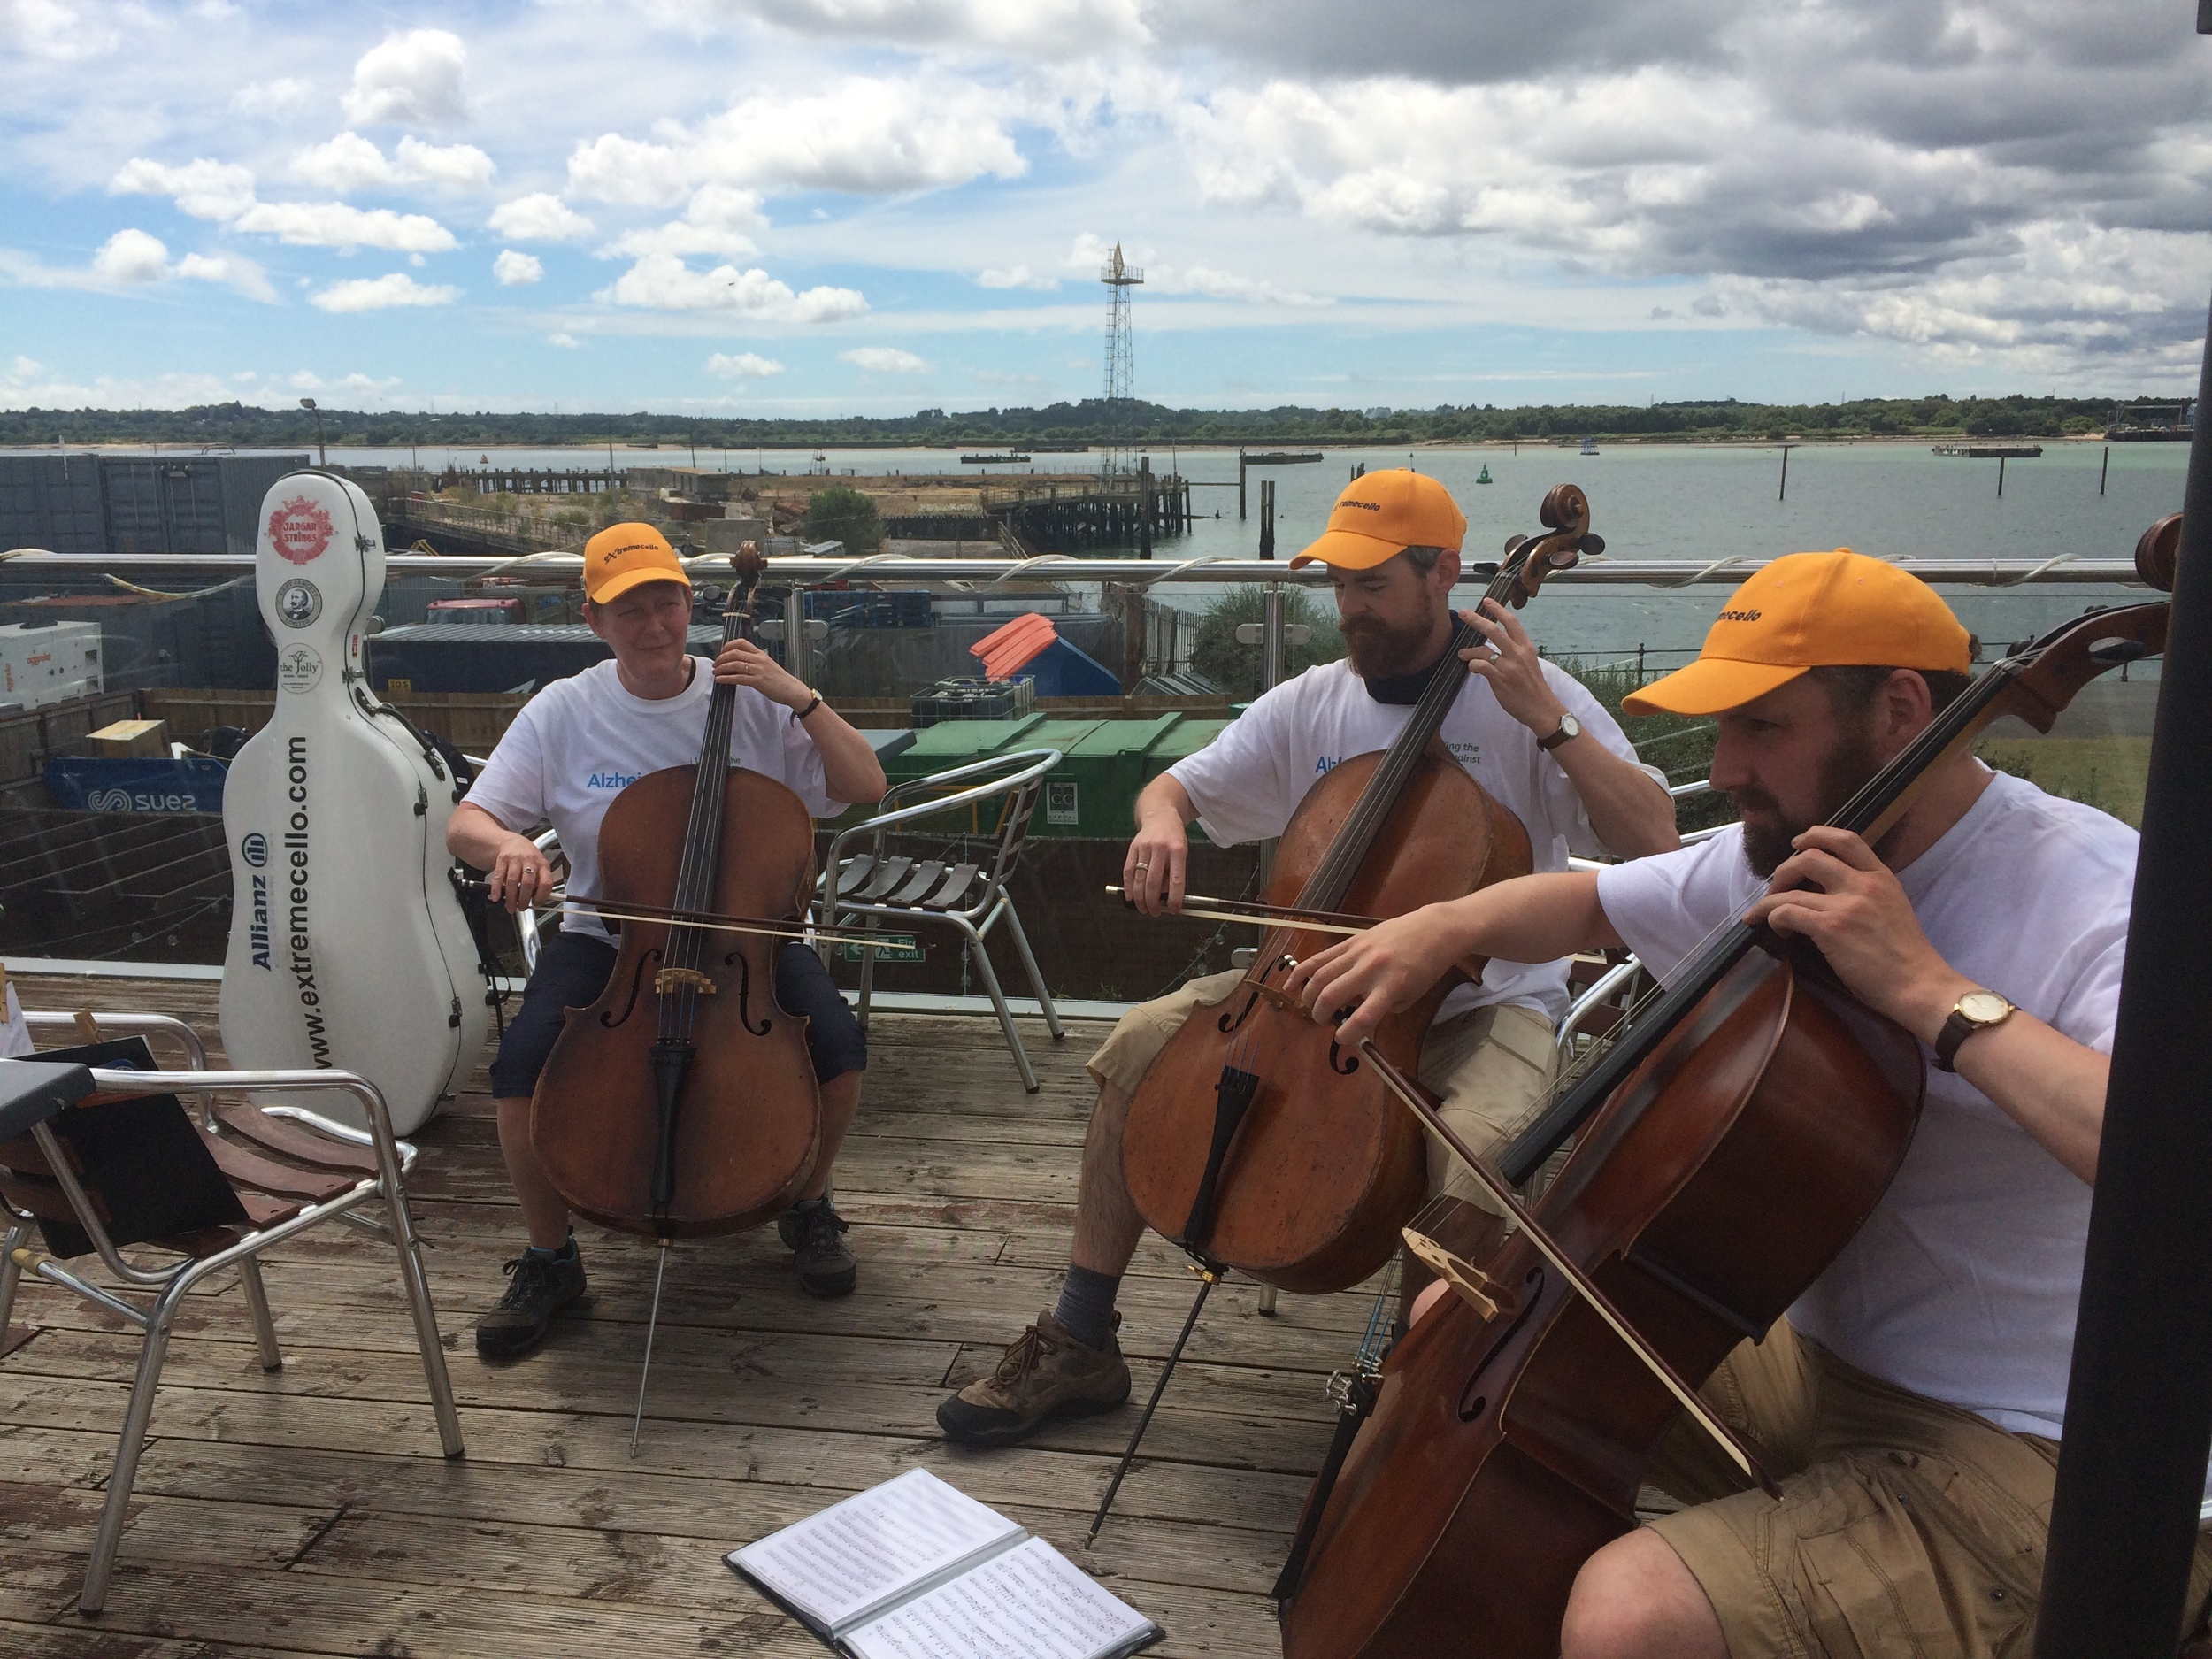 Playing at the Gatehouse Grill, Southampton Pier